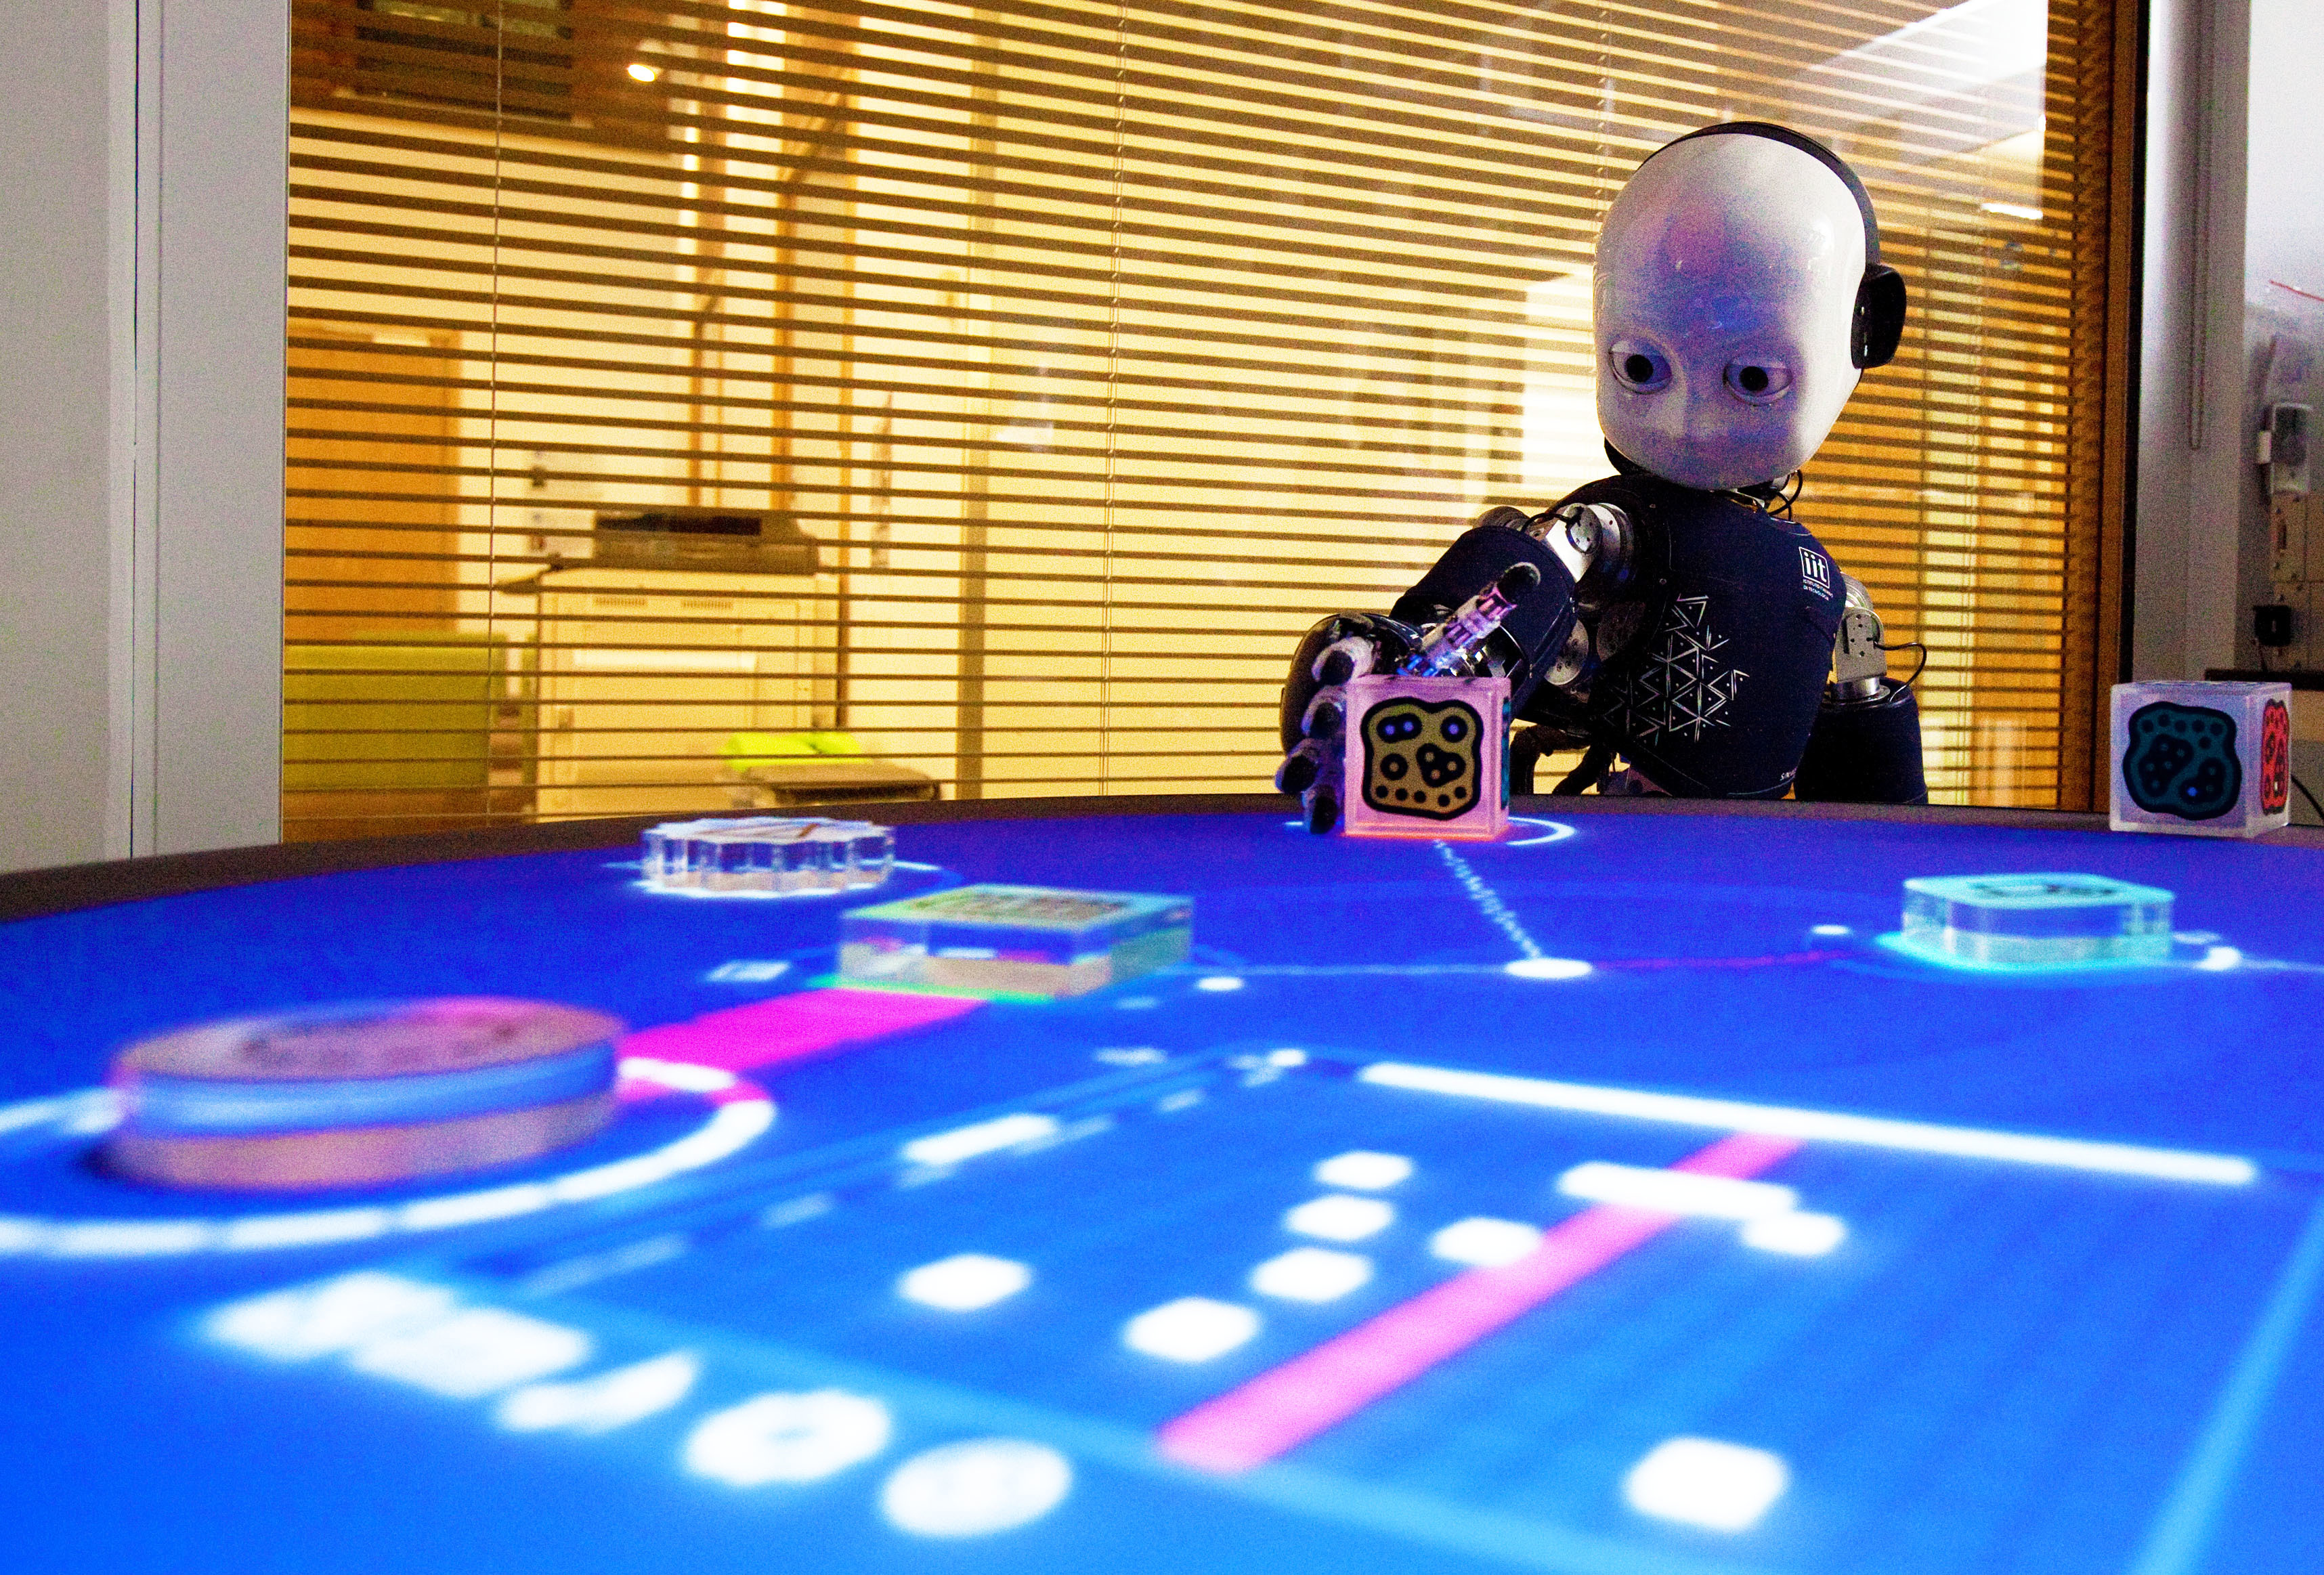 A child-like iCub robot plays a game where it learns how to match shapes to corresponding places on a light-up board